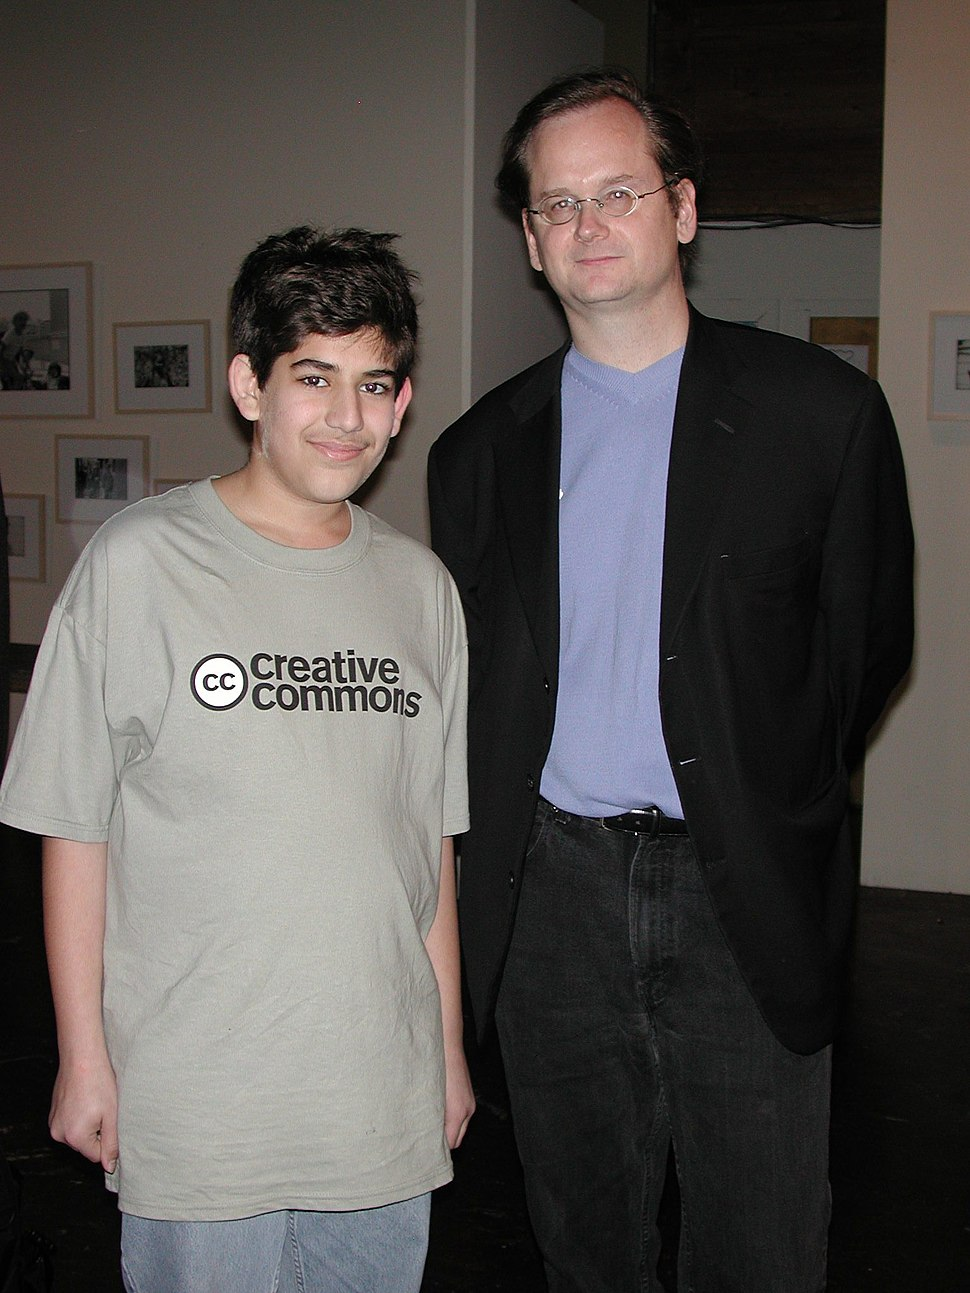 Aaron Swartz and Lawrence Lessig